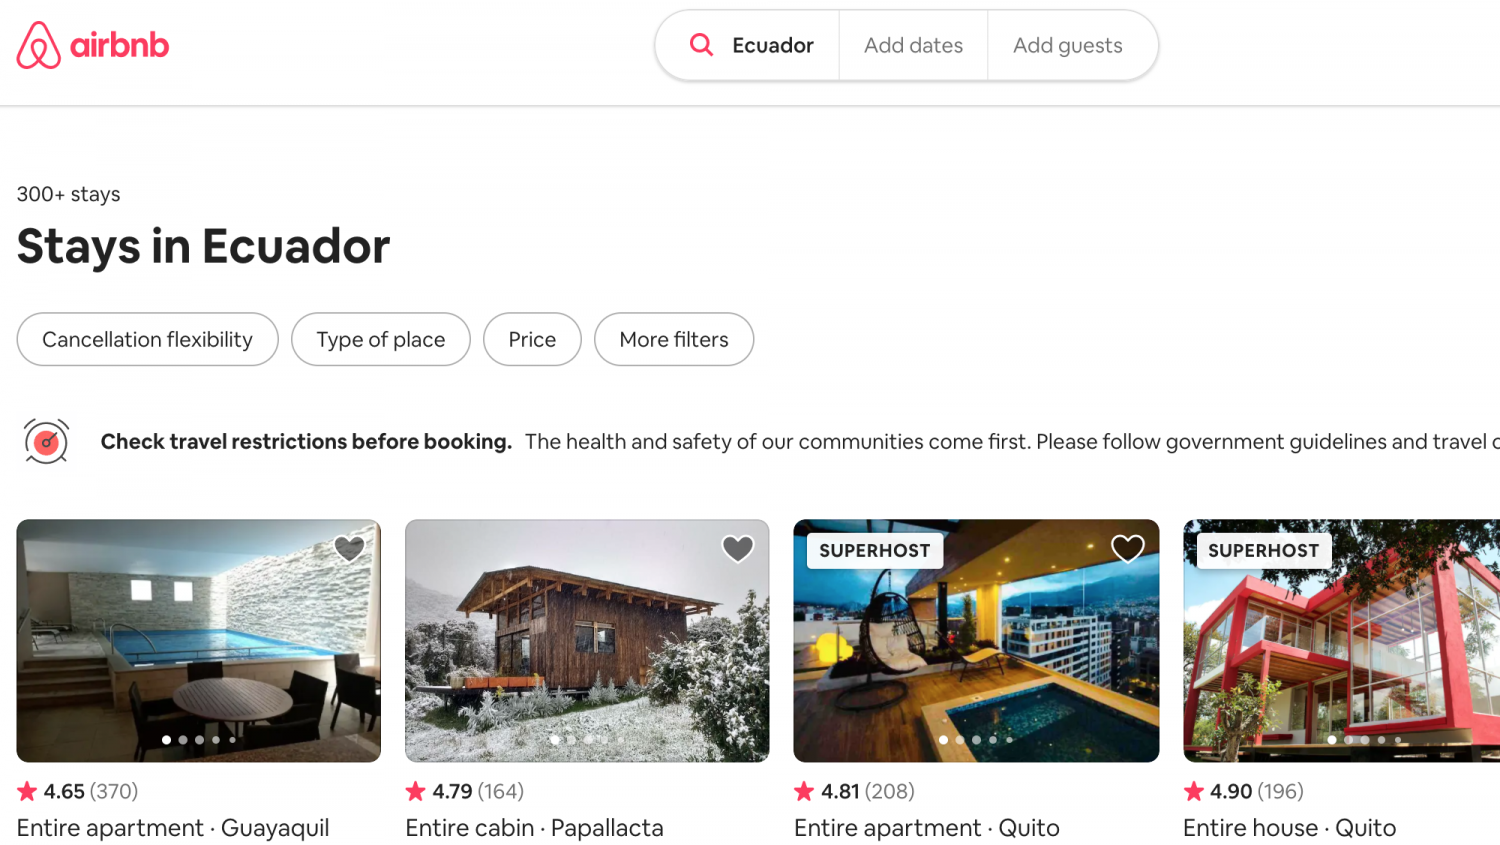 Cost of living in Ecuador, AirBnB Ecuador Stays